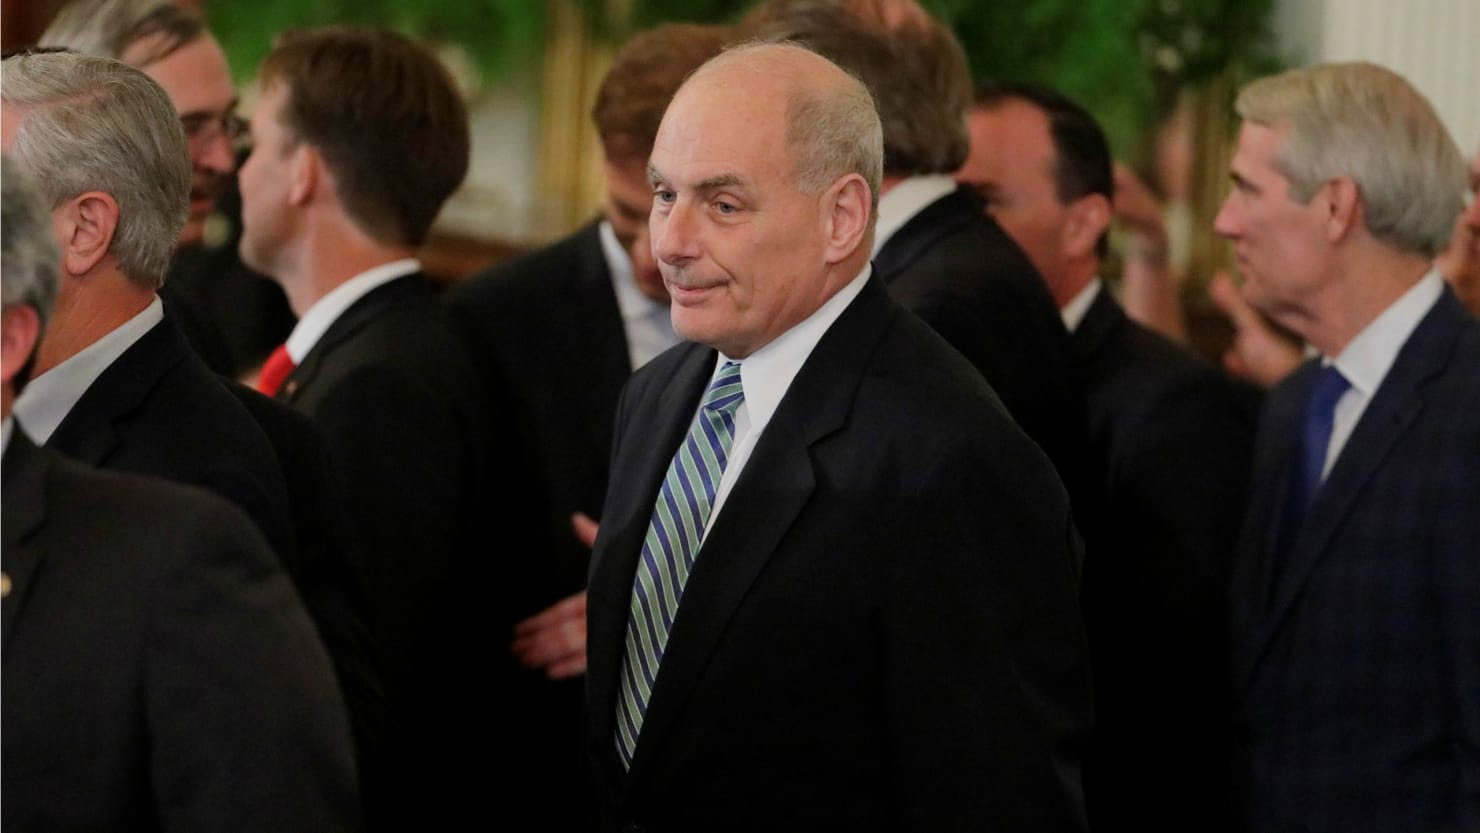 White House: John Kelly Was 'Displeased' With Breakfast Options at NATO Meeting, Not Trump